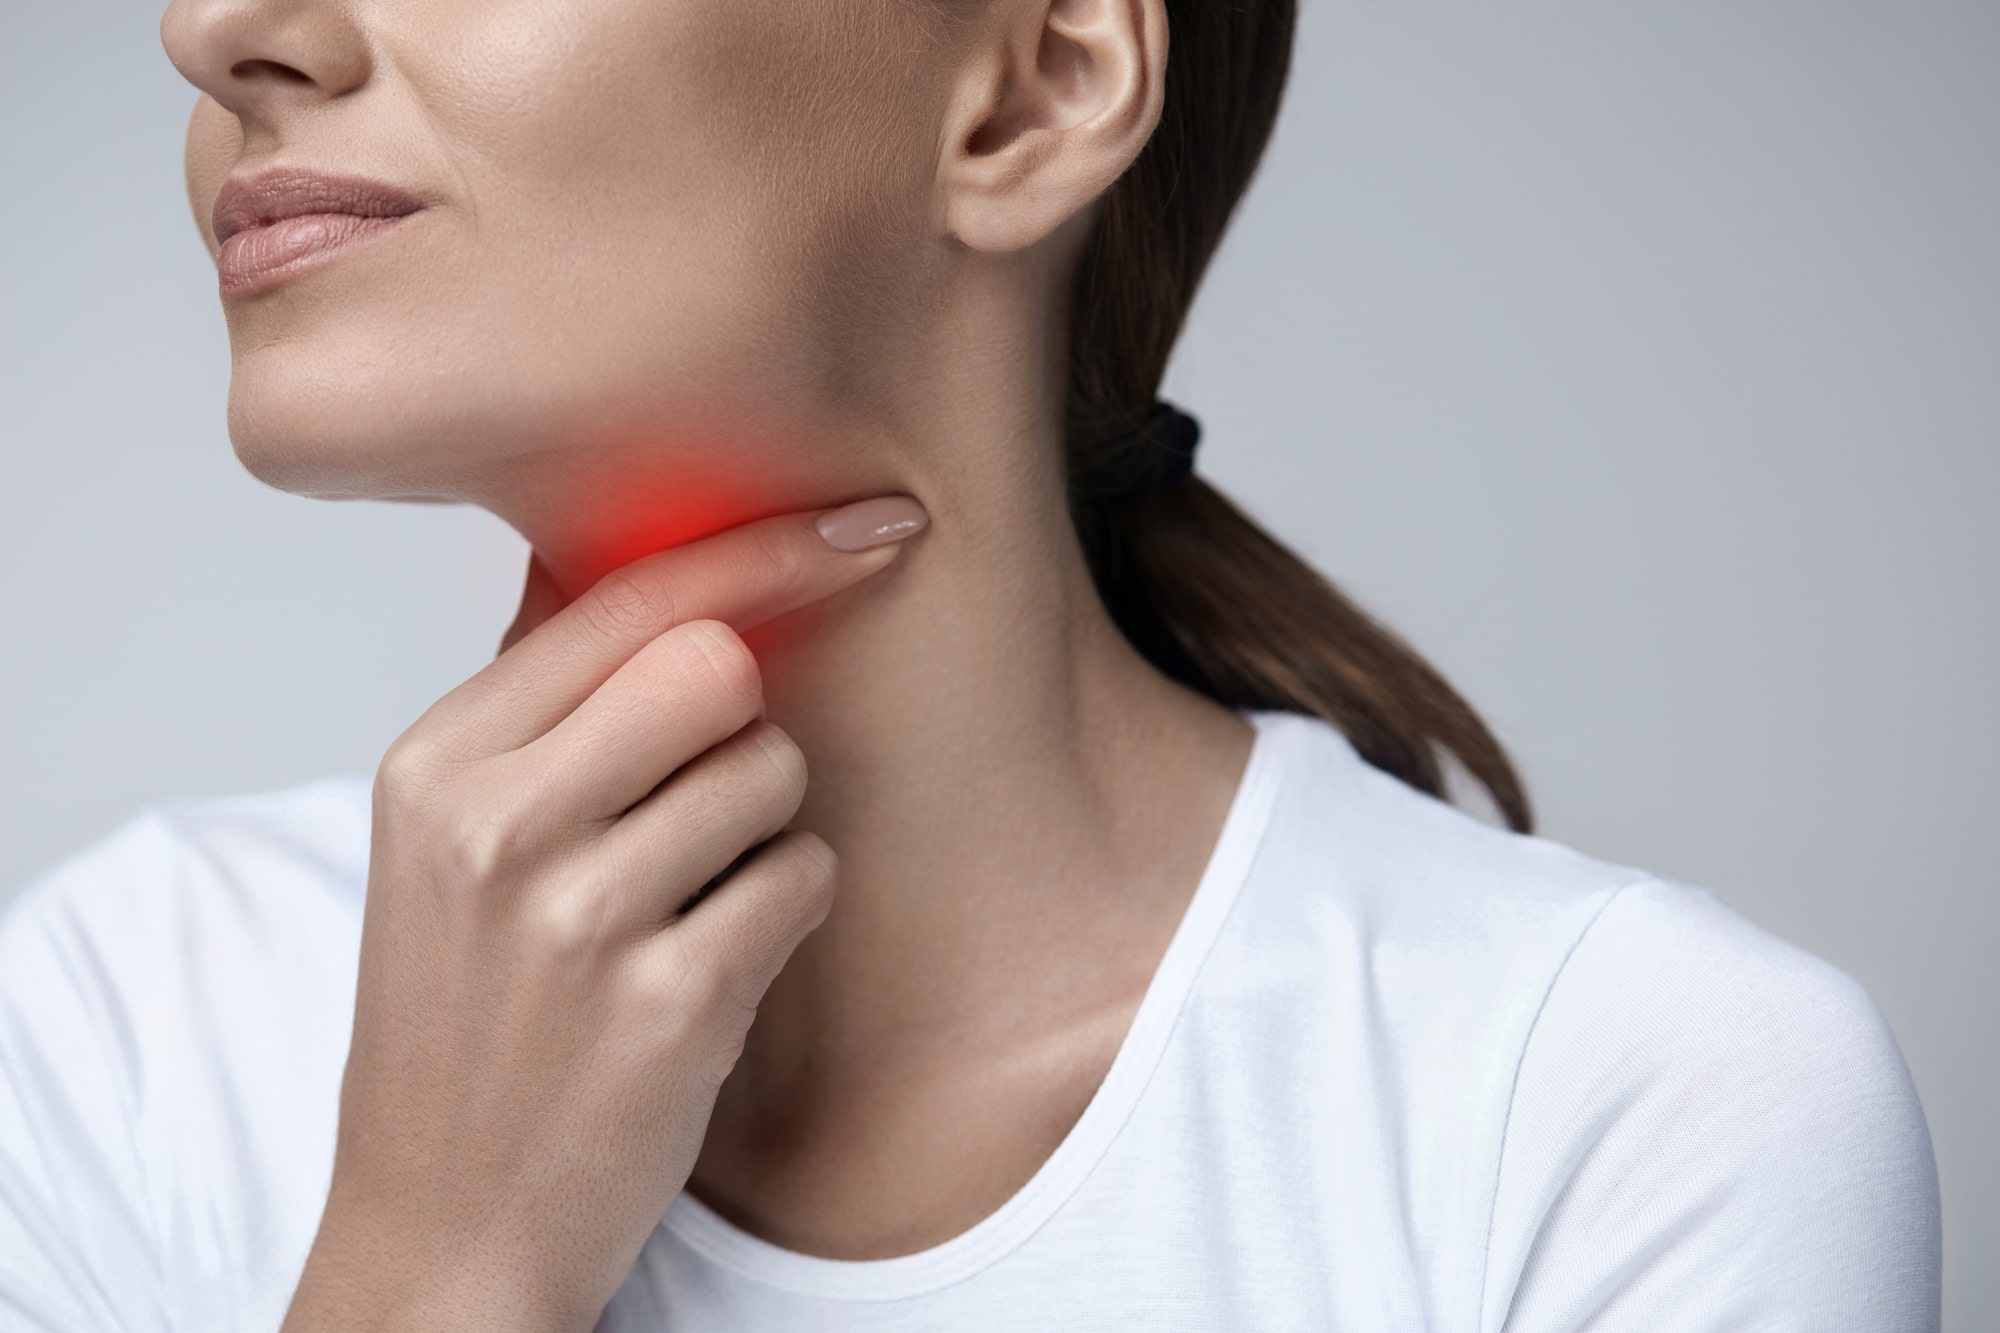 images Taking Care of a Sore Throat